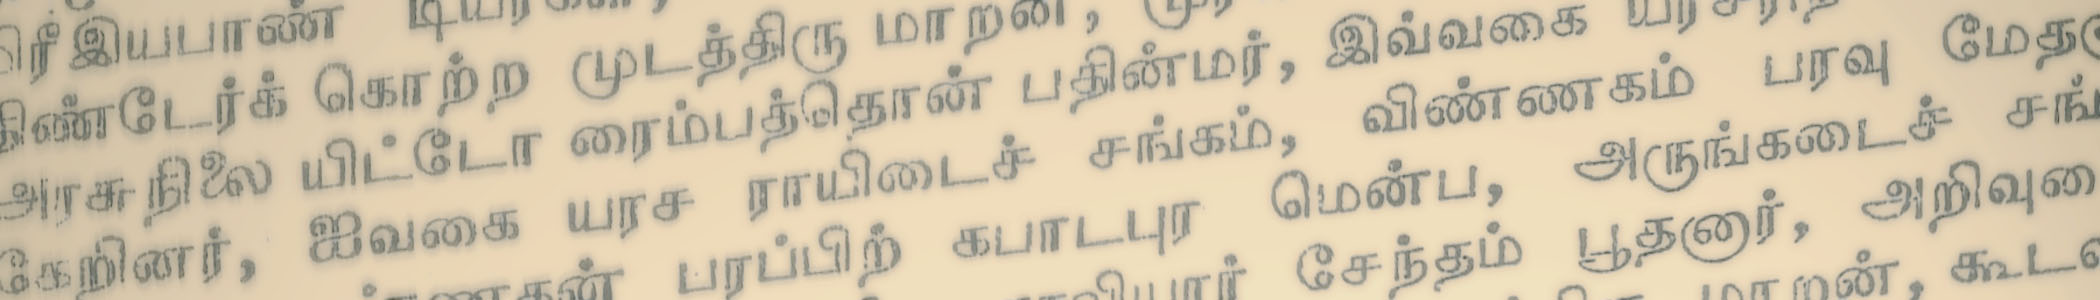 Tamil phrasebook – Travel guide at Wikivoyage